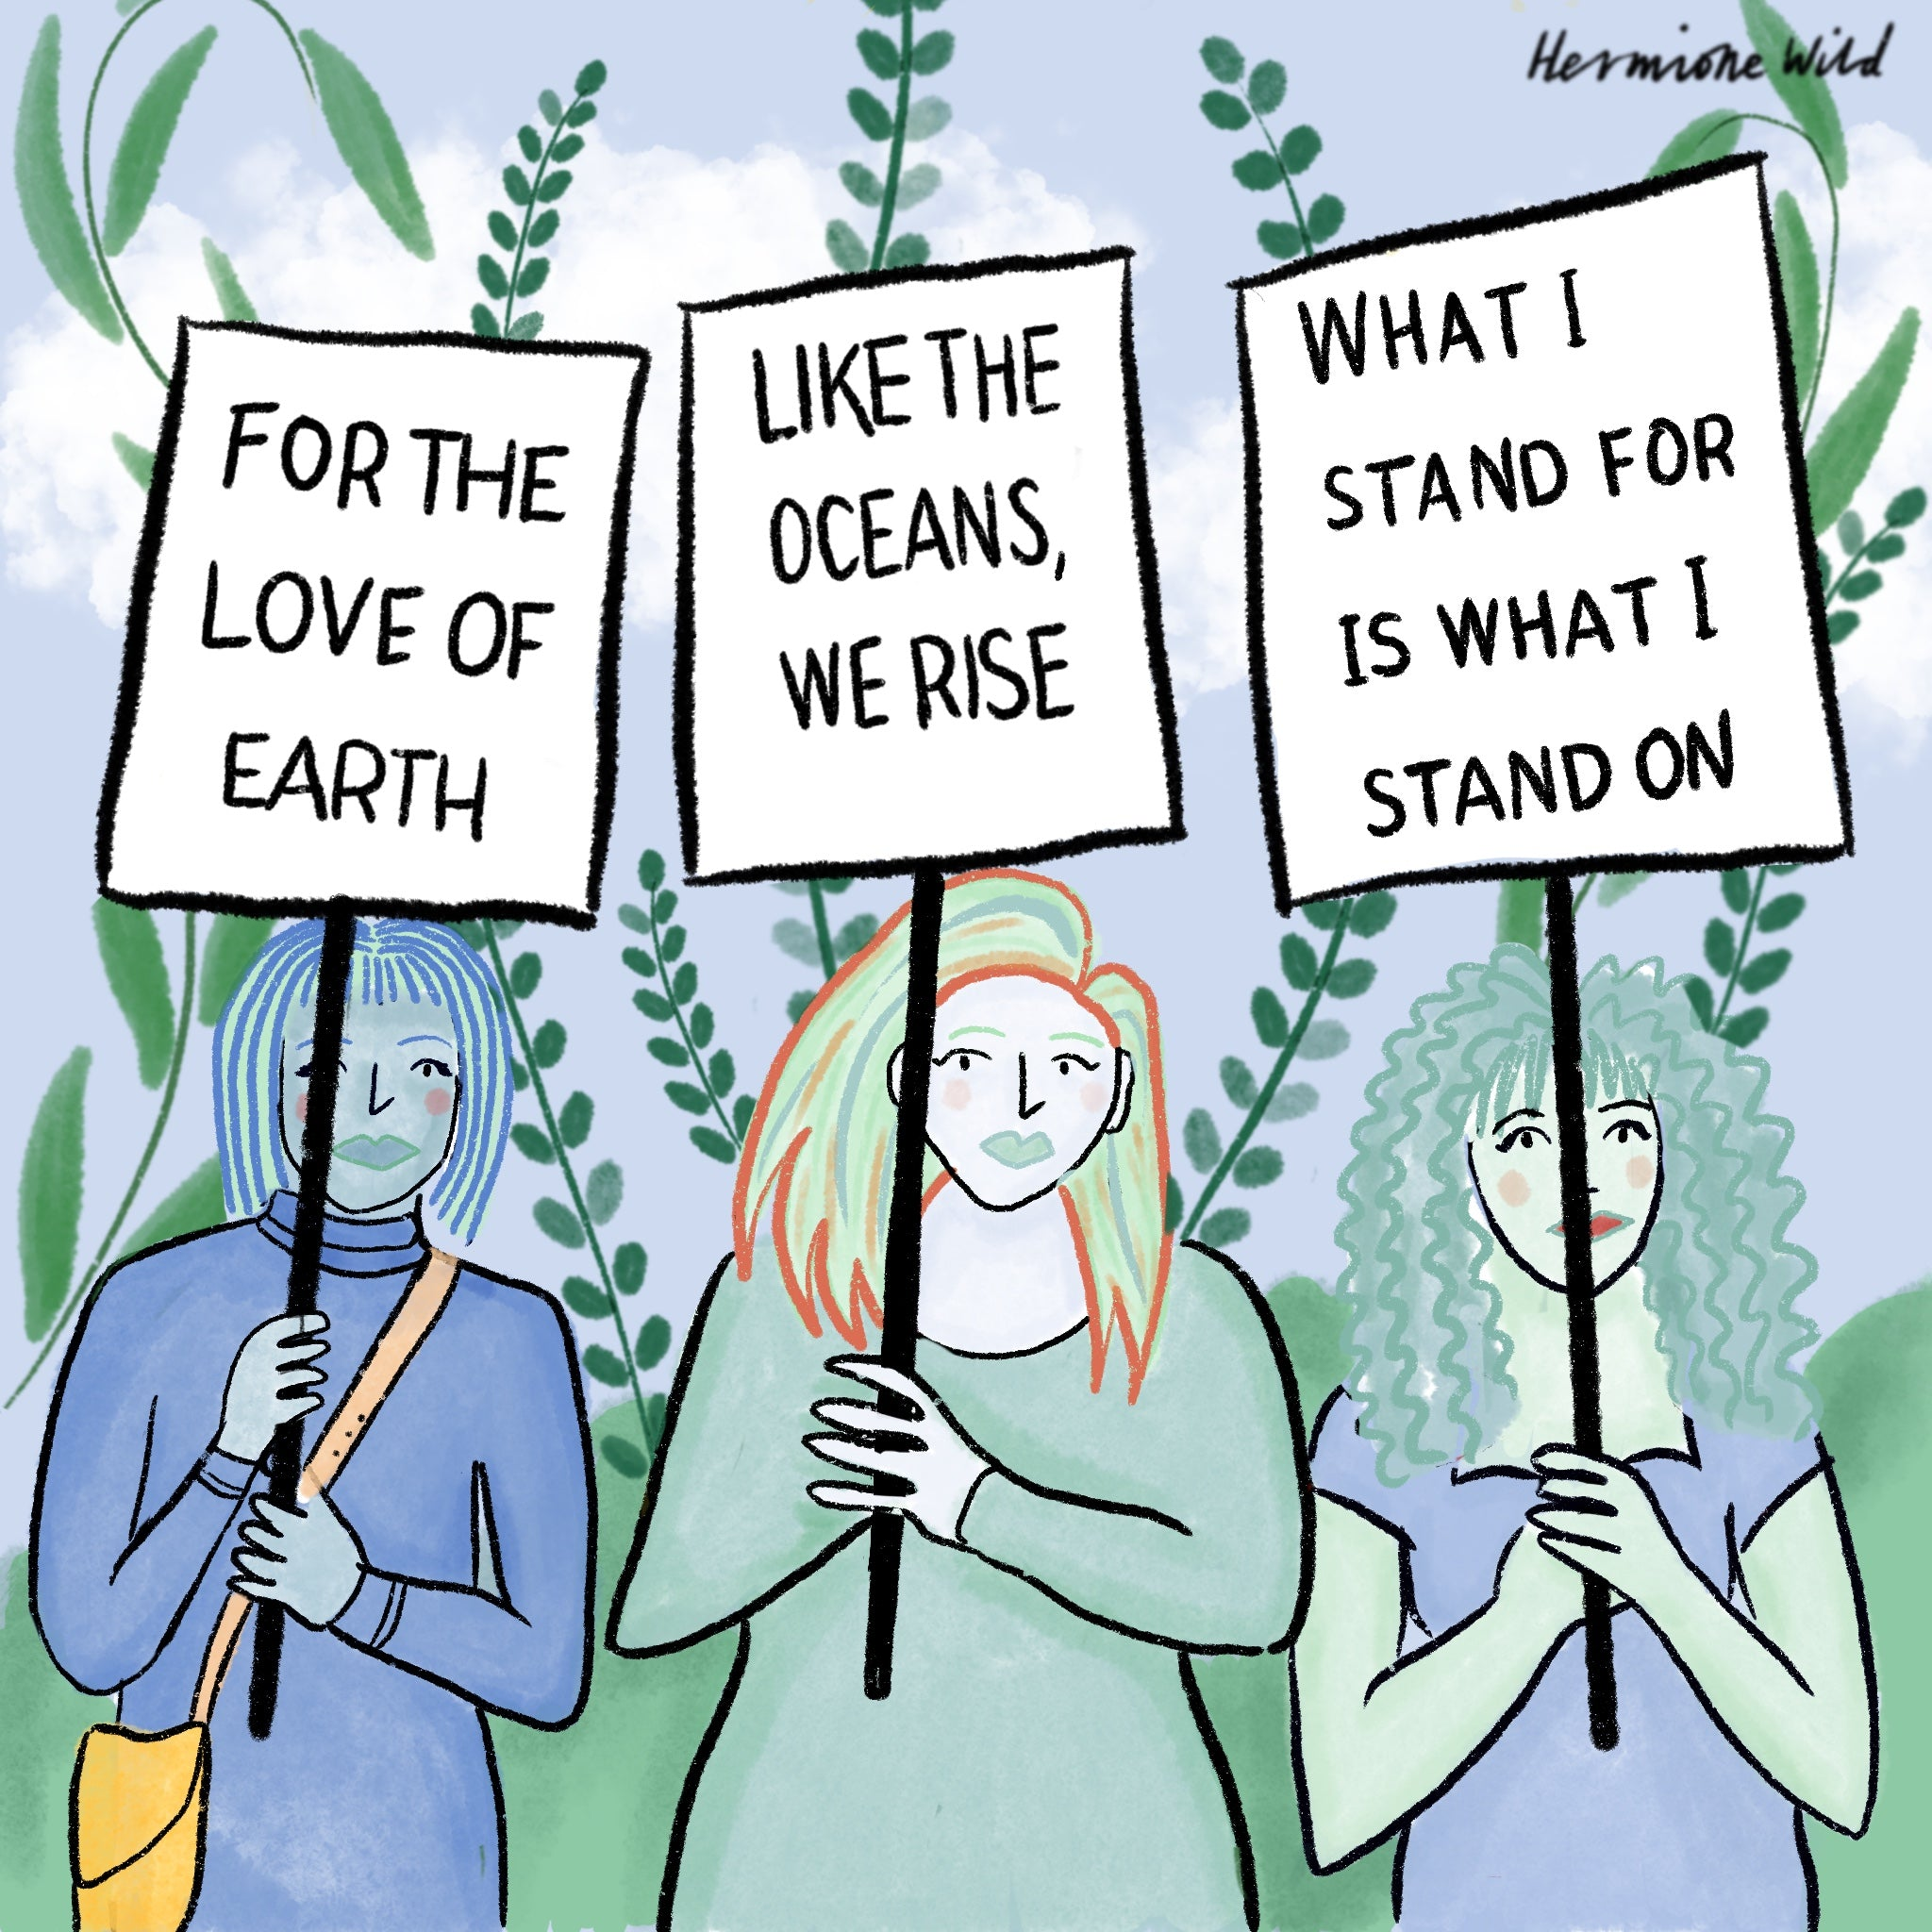 Limited colour palette blue and green with black outlines. Three women protesting climate change.